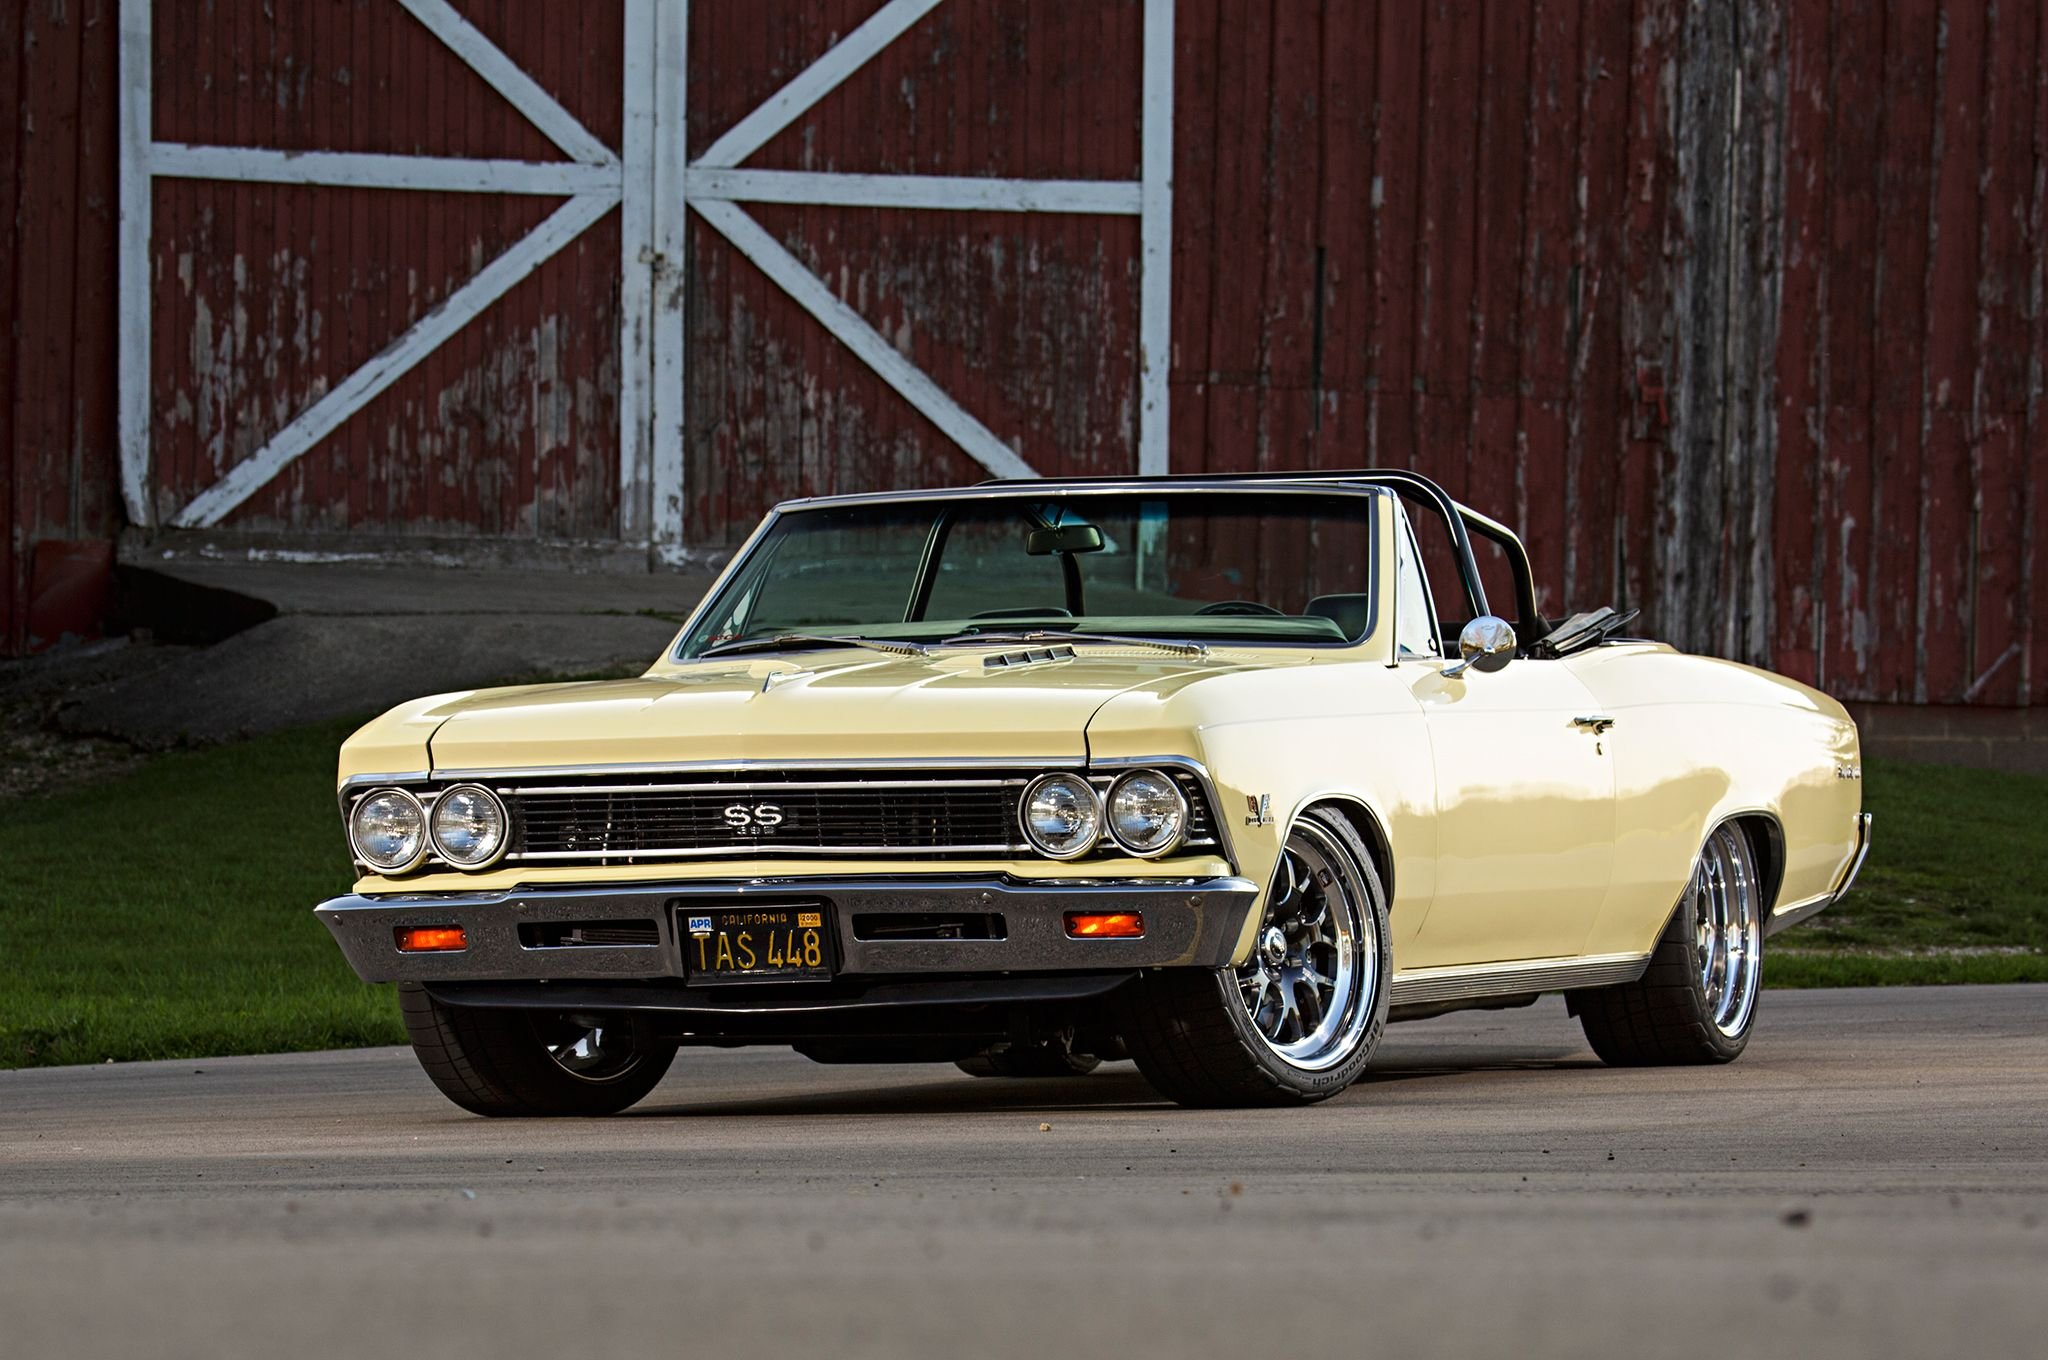 1966 Chevrolet Chevy Chevelle Convertible Super Street Pro Touring Camaro Ss Low Usa 01 Wallpaper 2048x1360 812853 Wallpaperup